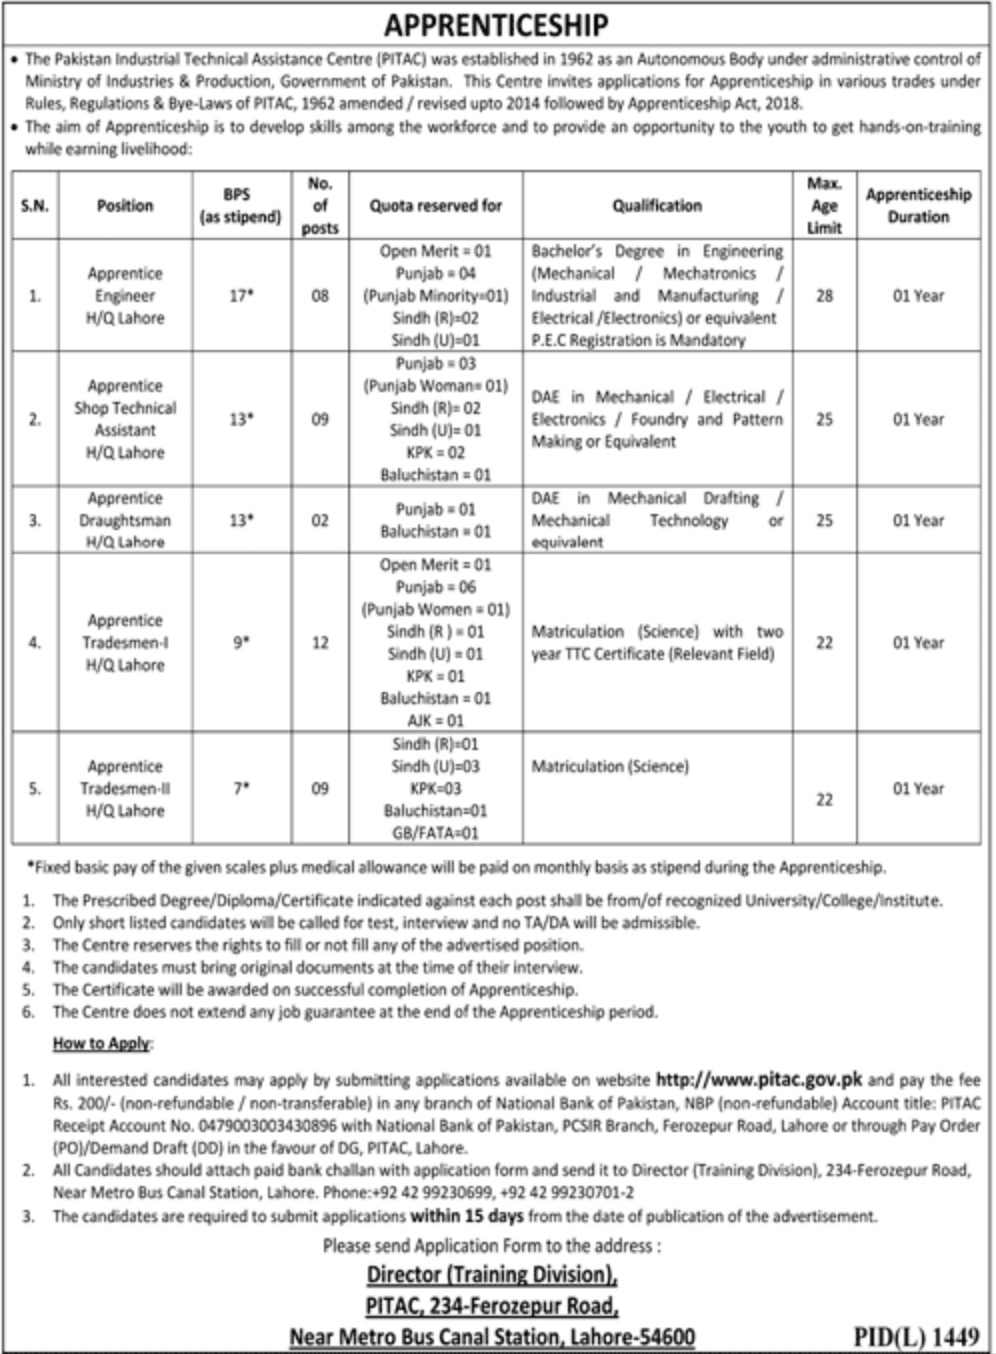 Latest Pakistan Industrial Technical Assistance Centre PITAC Jobs November 2020